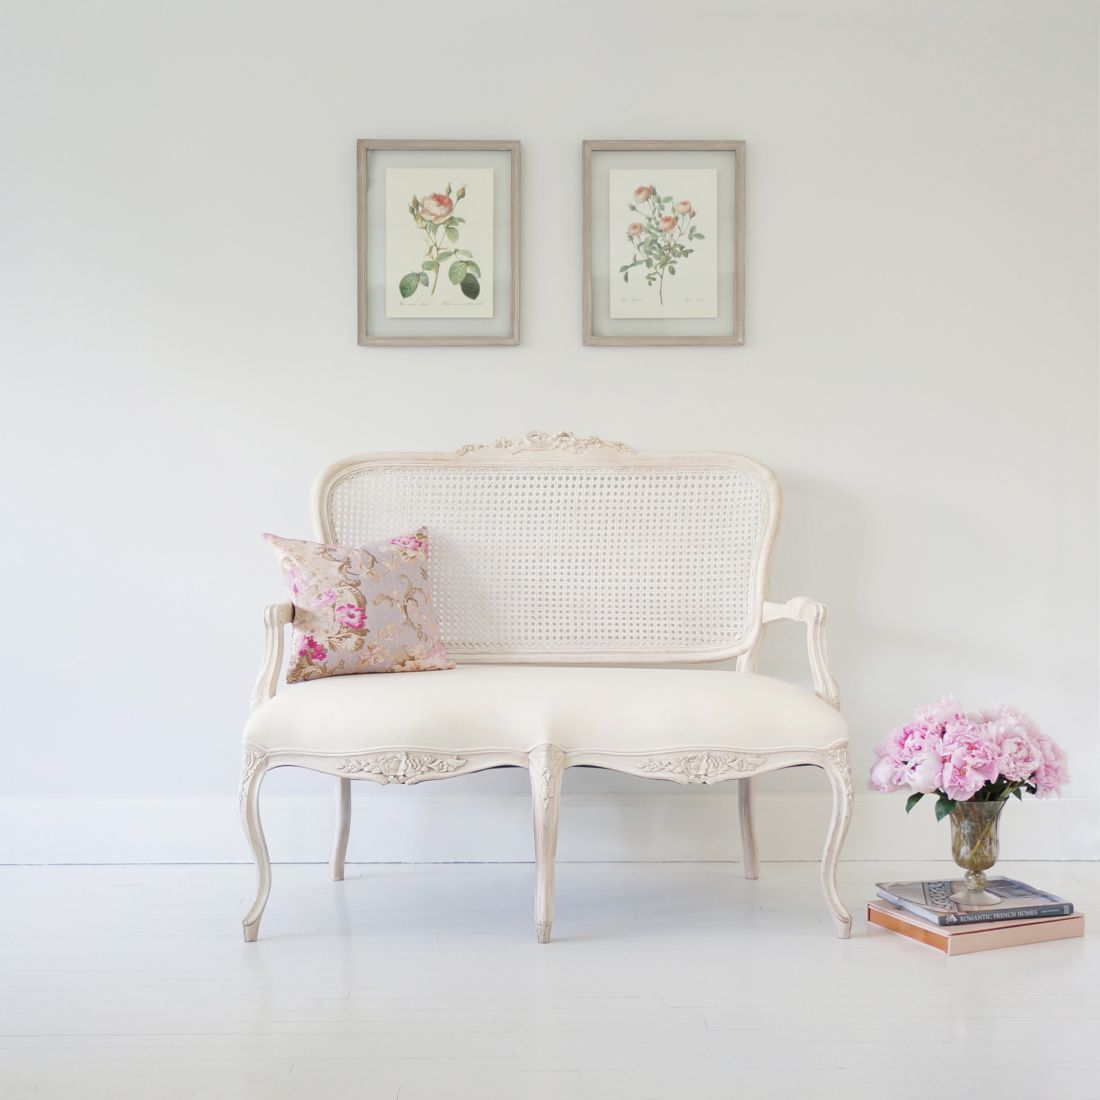 20the-french-bedroom-co_vignette-white-washed-french-rattan-sofa-lifestyle.jpg